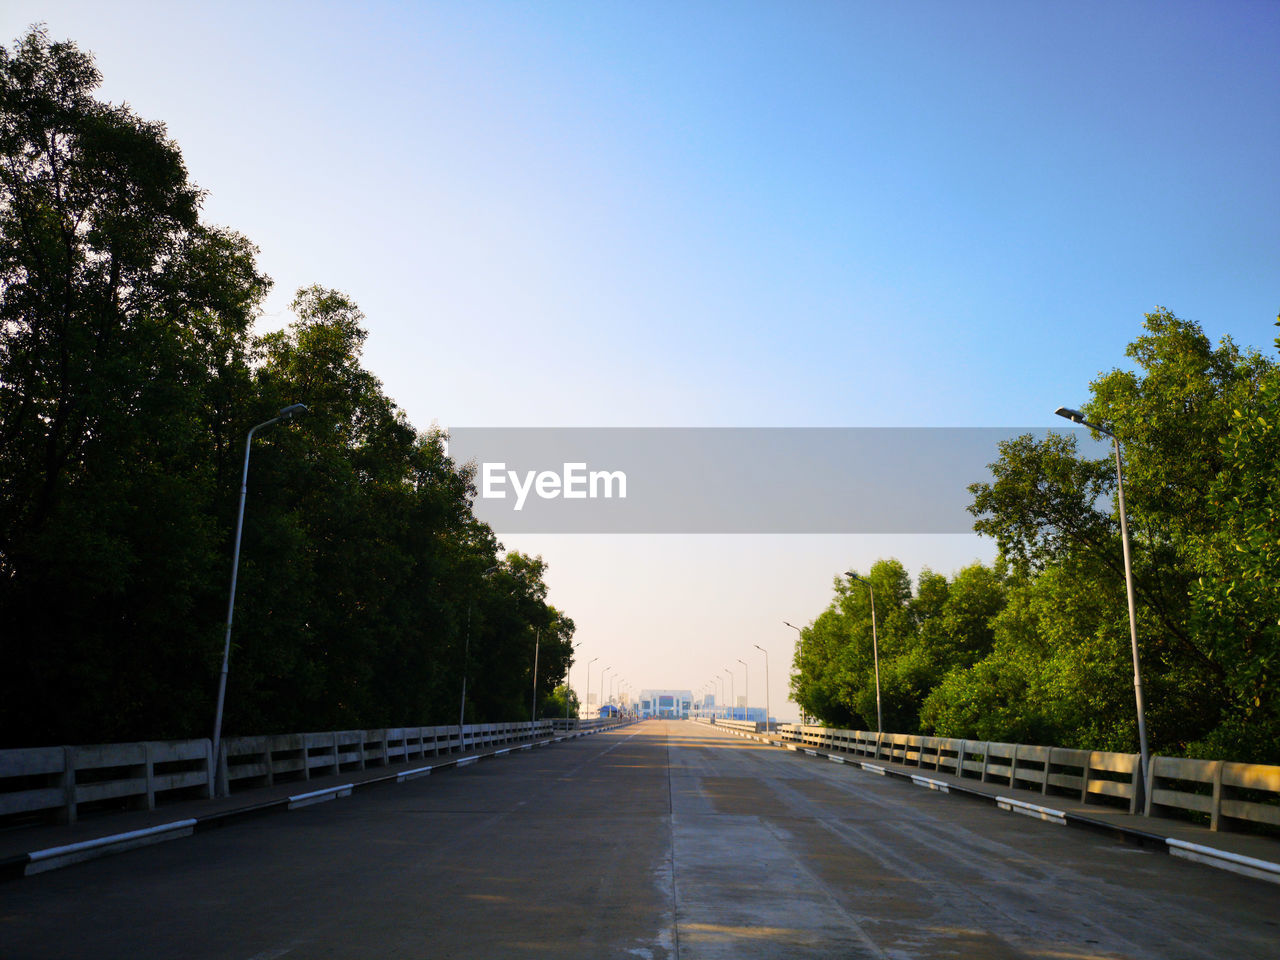 tree, plant, sky, direction, the way forward, transportation, nature, road, no people, clear sky, diminishing perspective, architecture, day, outdoors, built structure, street, empty, copy space, city, growth, treelined